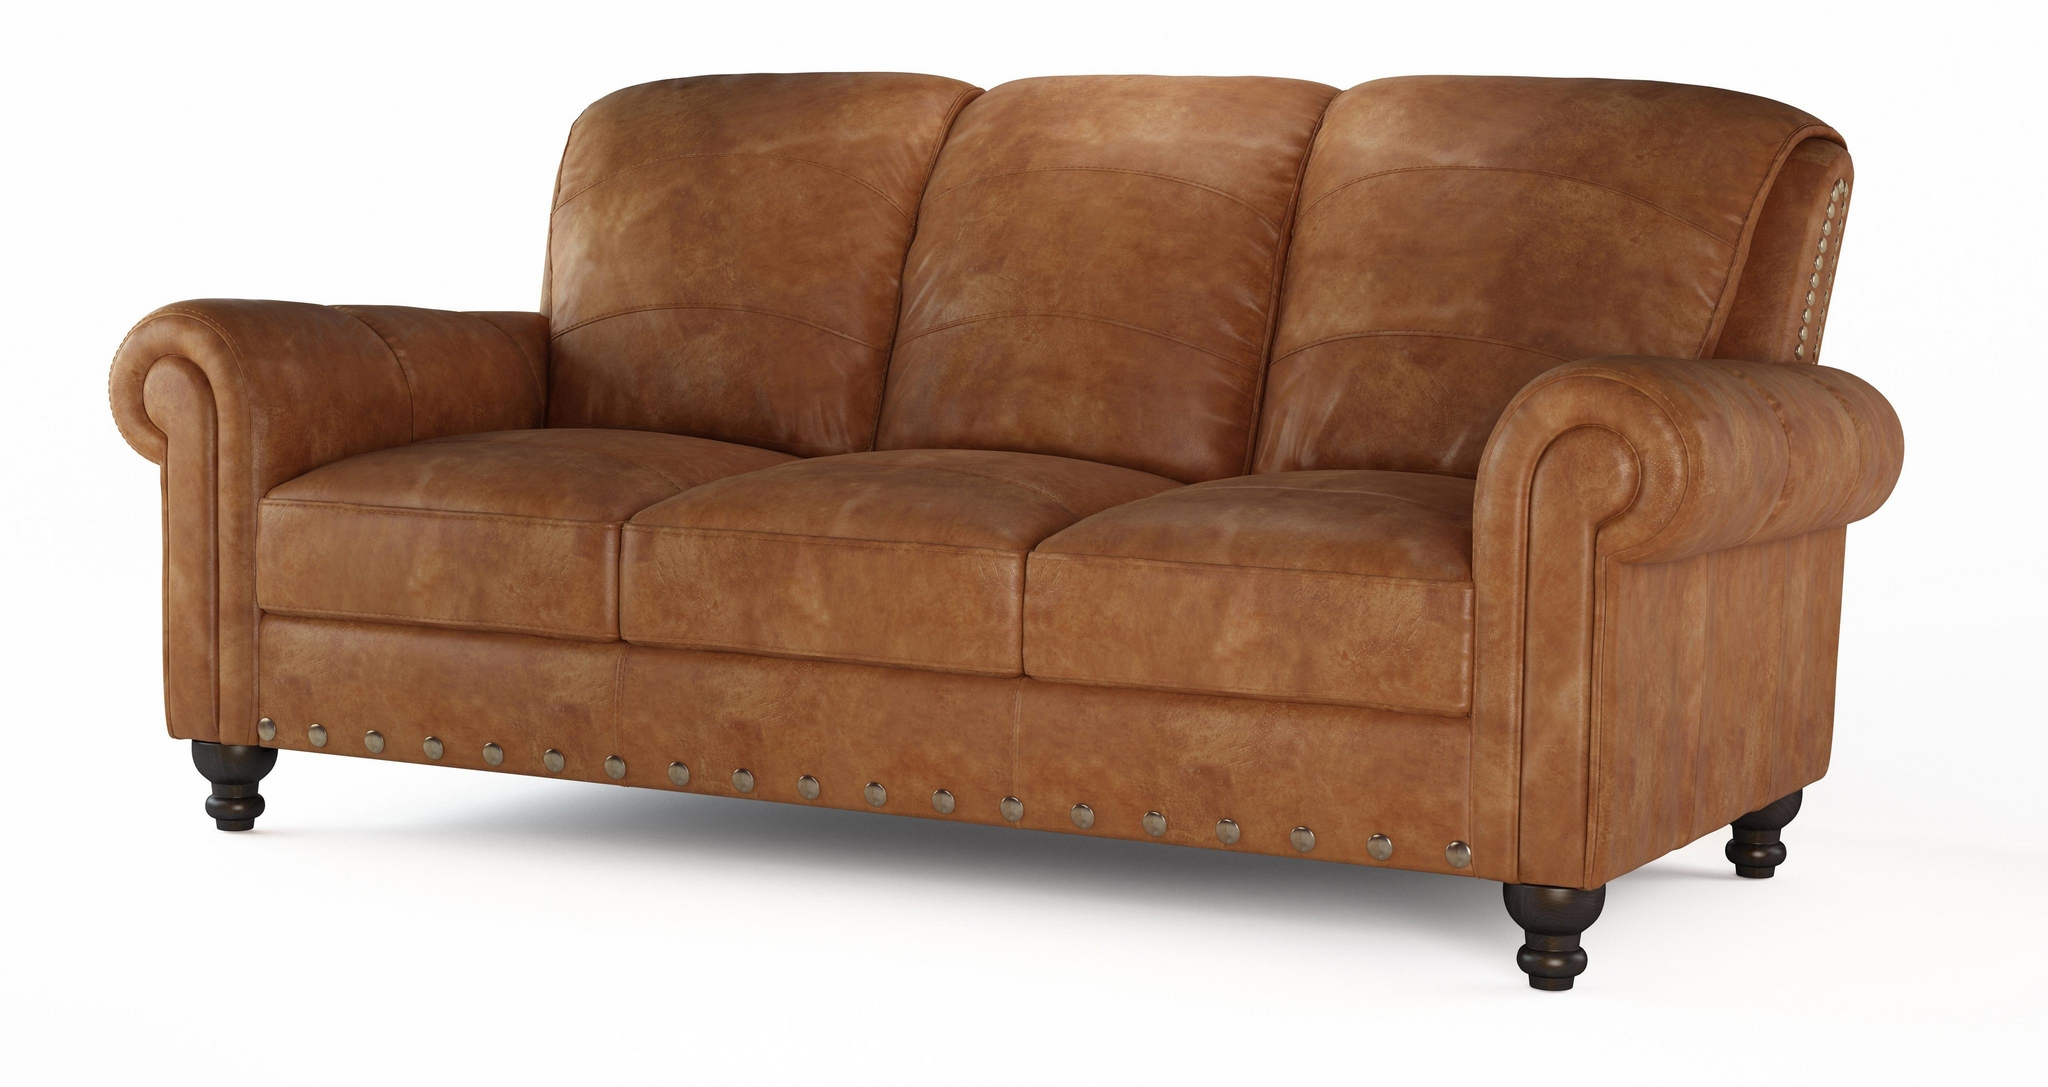 DFS PERTH 3 SEATER SETTEE 100% REAL NATURAL LEATHER TAN